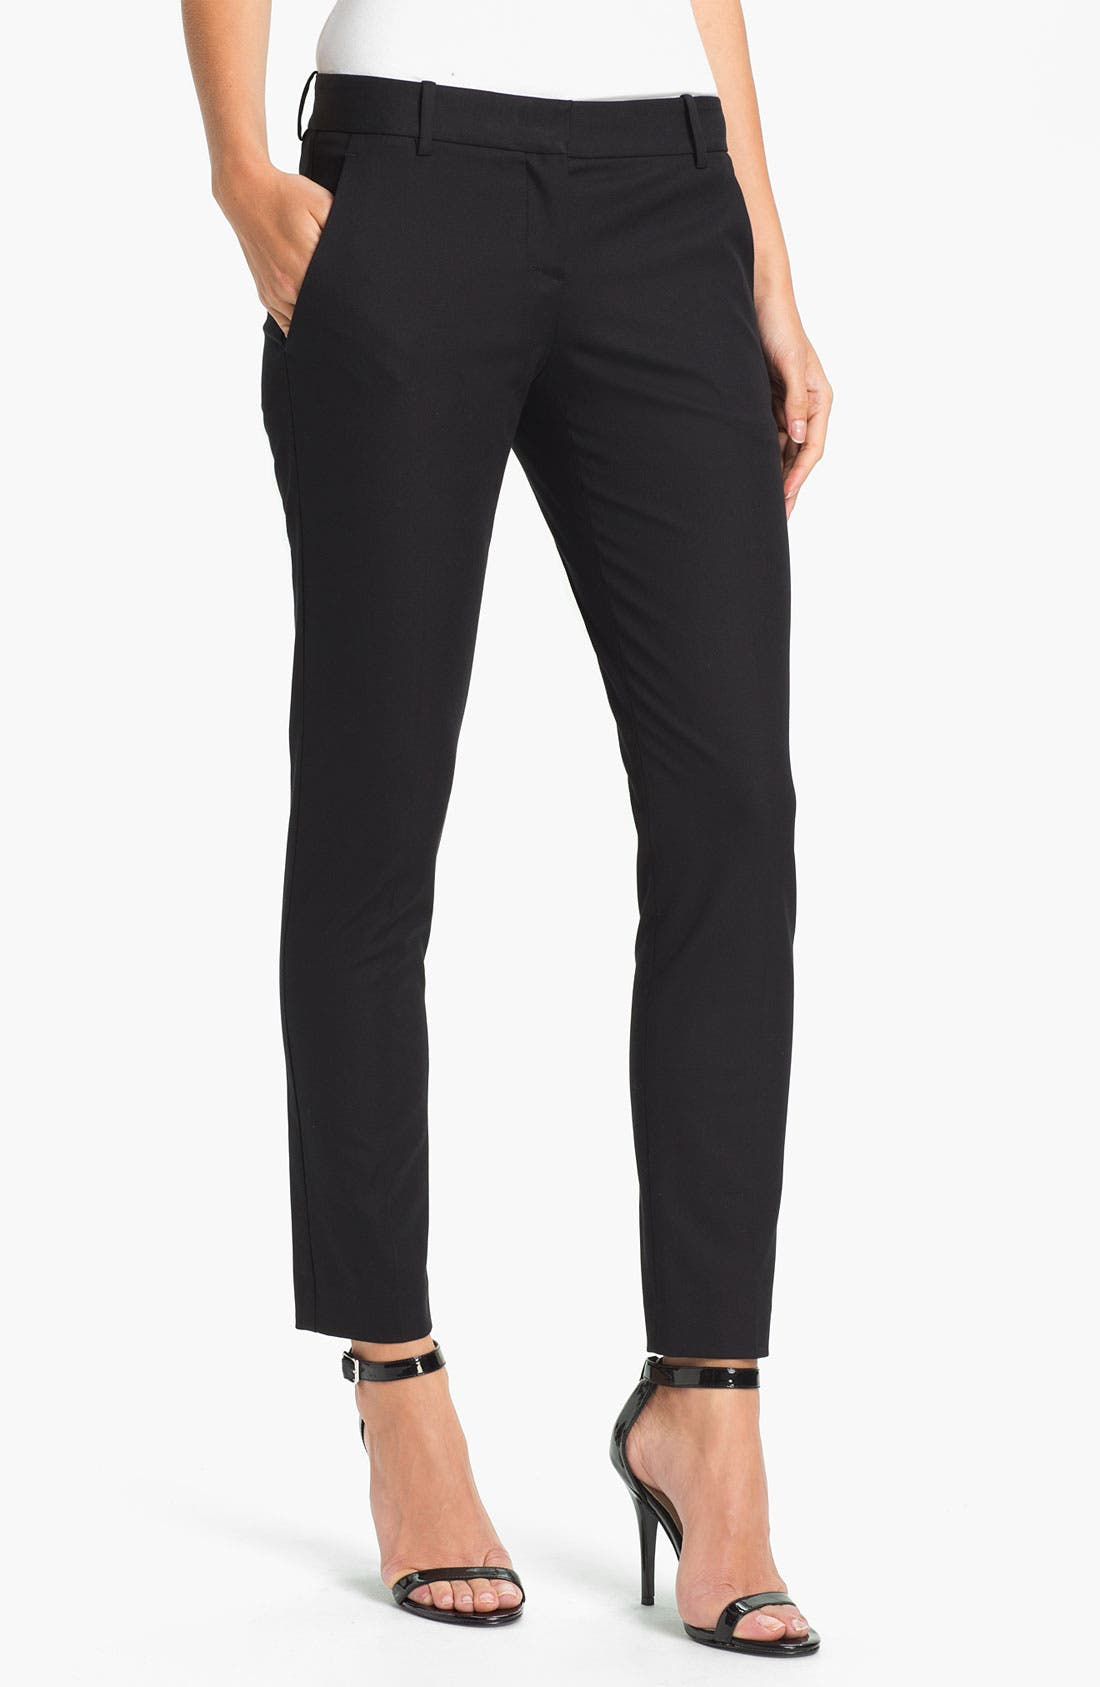 Alternate Image 1 Selected - Theory 'Testra' Ankle Pants